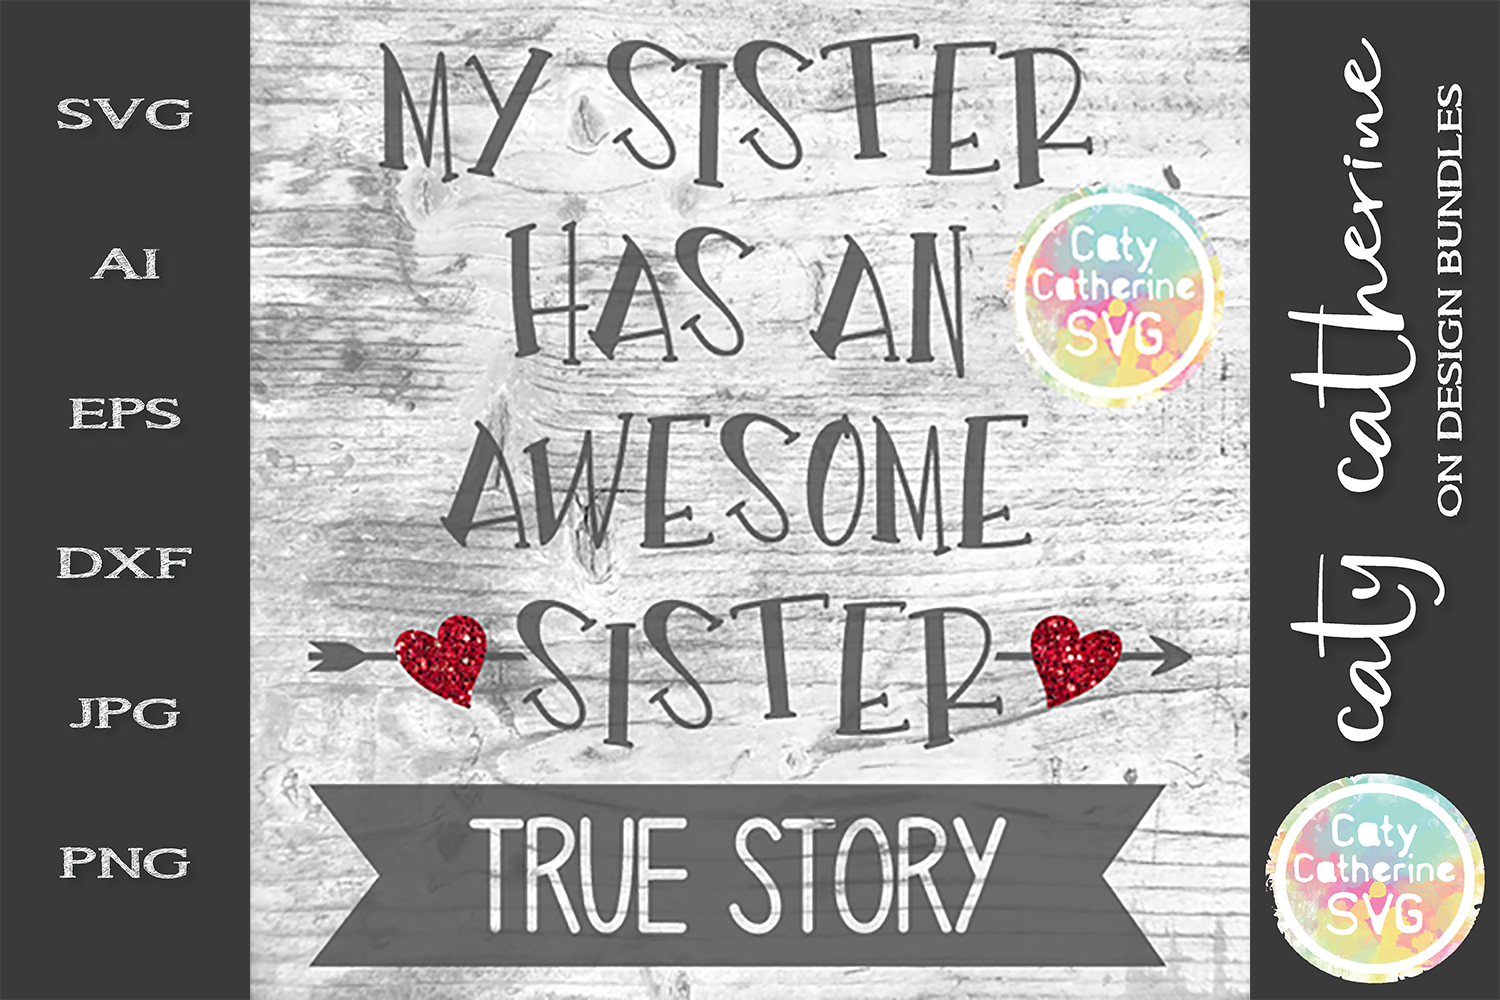 My Sister Has An Awesome Sister True Story SVG Funny Family example image 1